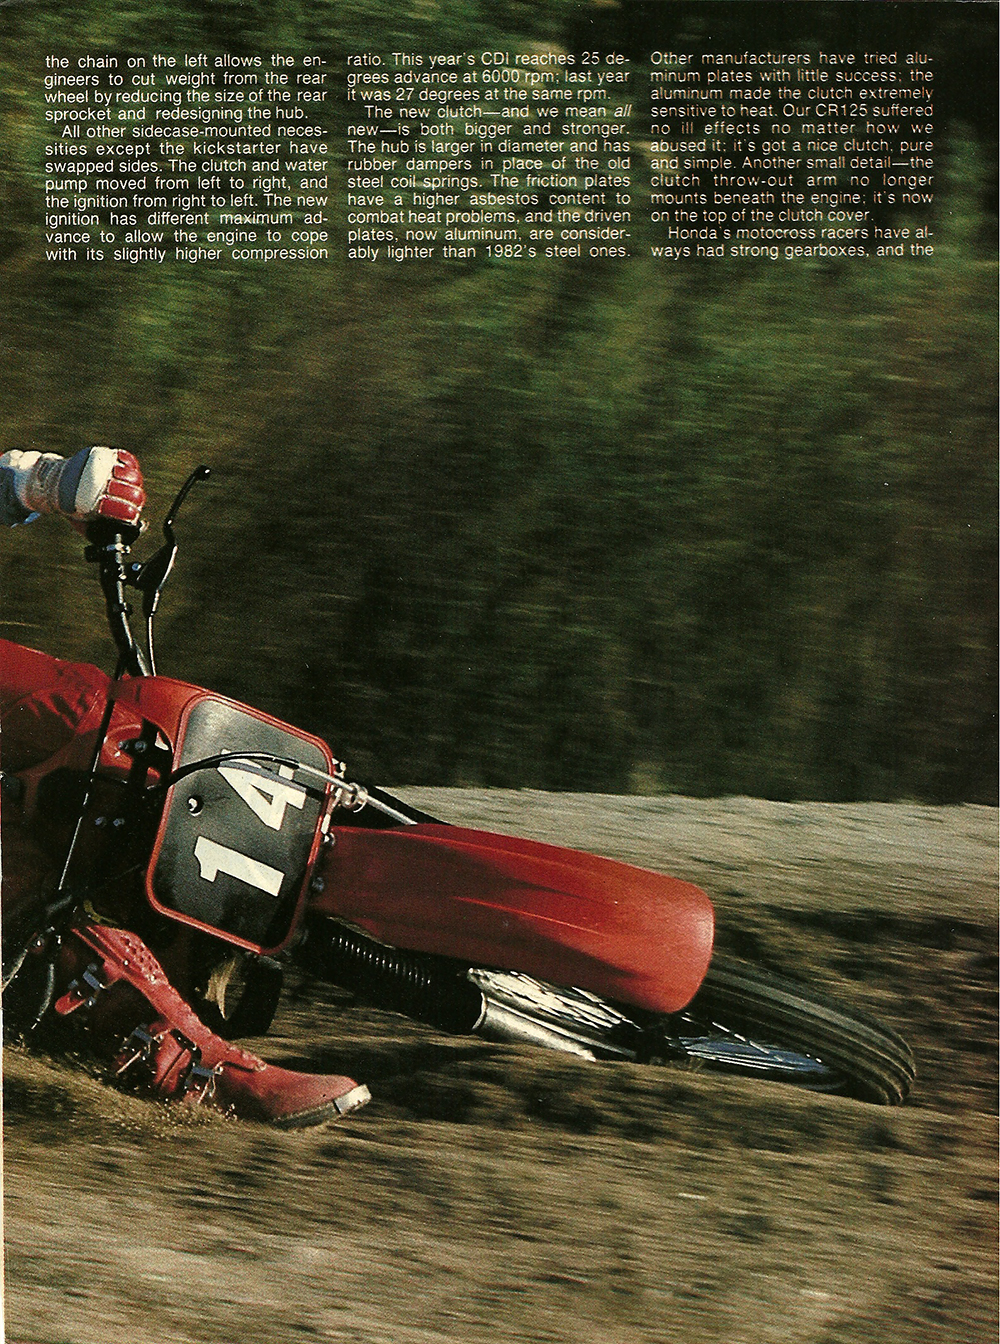 1983 Honda CR125R road test 4.jpg